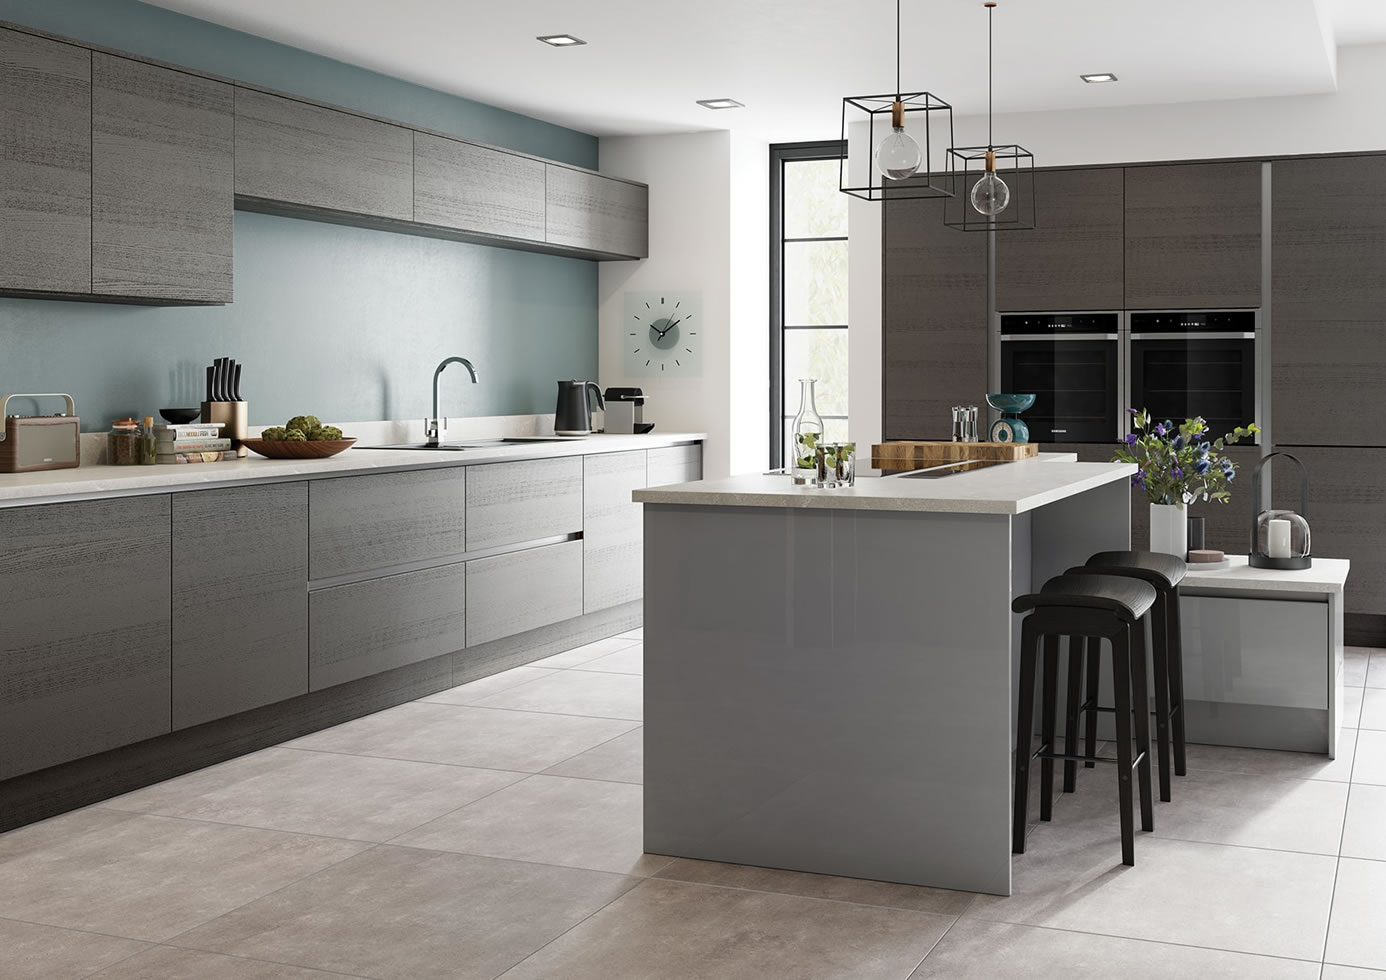 Mya Kitchens Tavola Anthracite & Zola Gloss Dust Grey Main Image Stafford